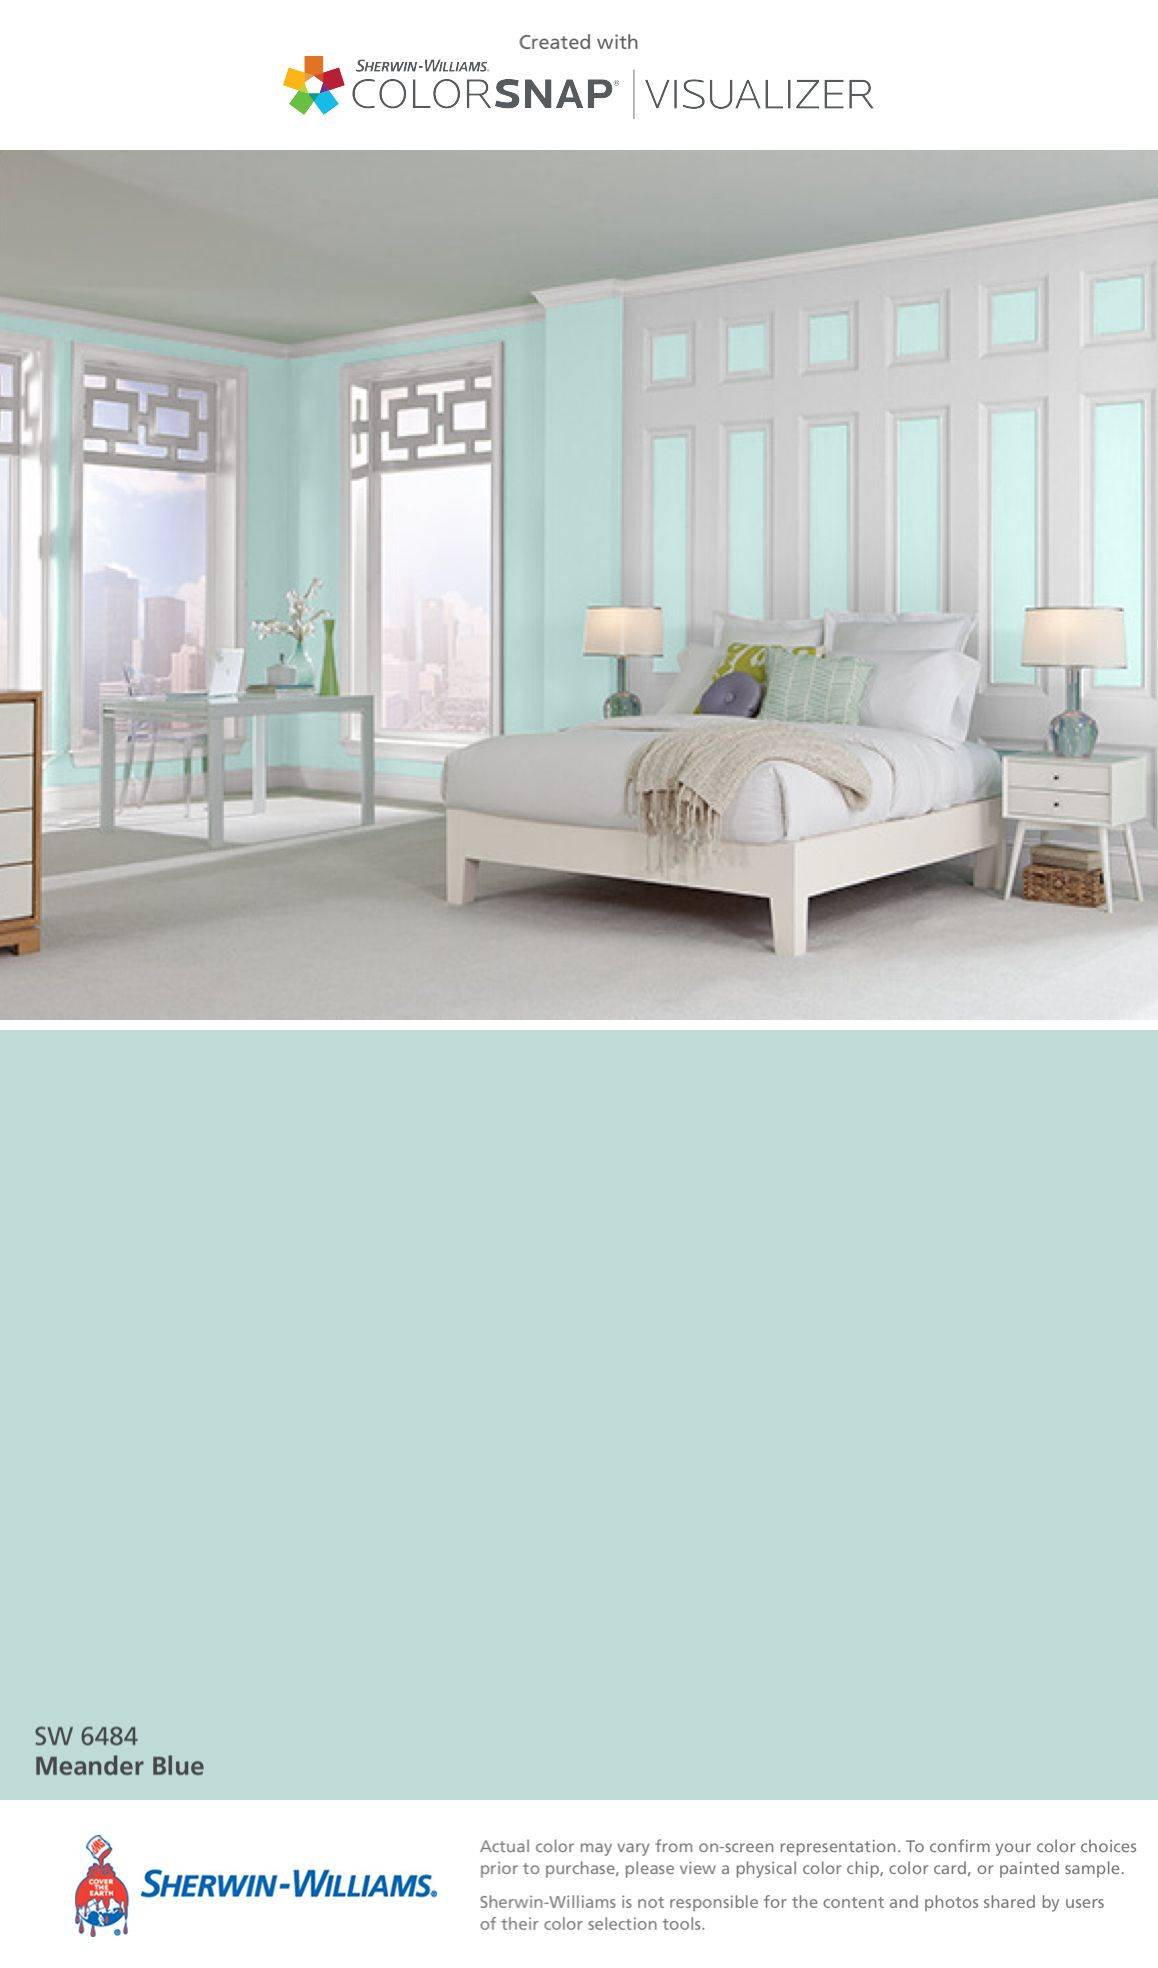 Silver Strand by Sherwin Williams Unique I Found This Color with Colorsnap Visualizer for iPhone by